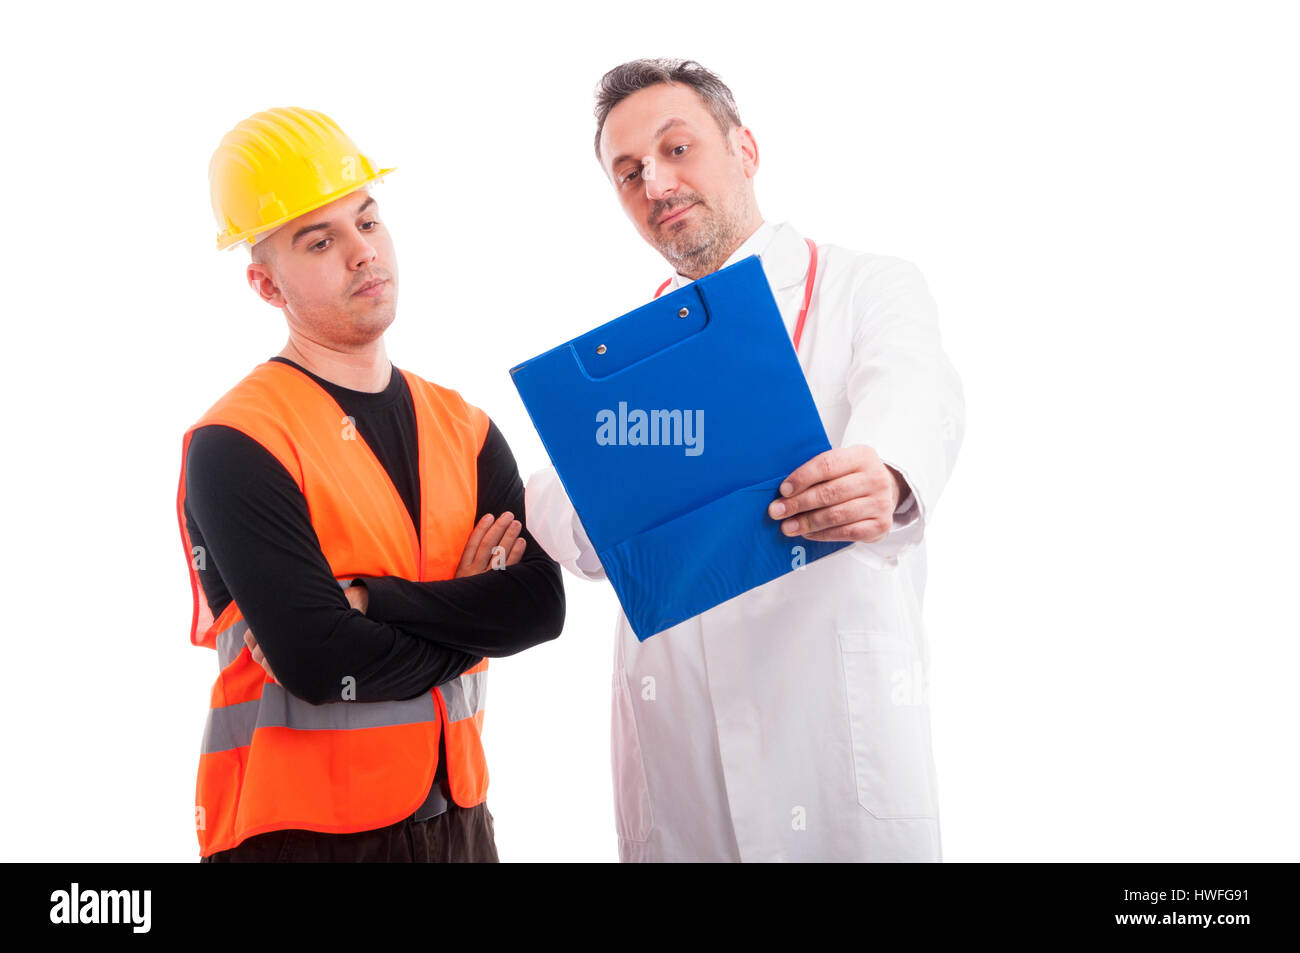 Doctor showing something on clipboard to constructor and looking surprised isolated on white background - Stock Image